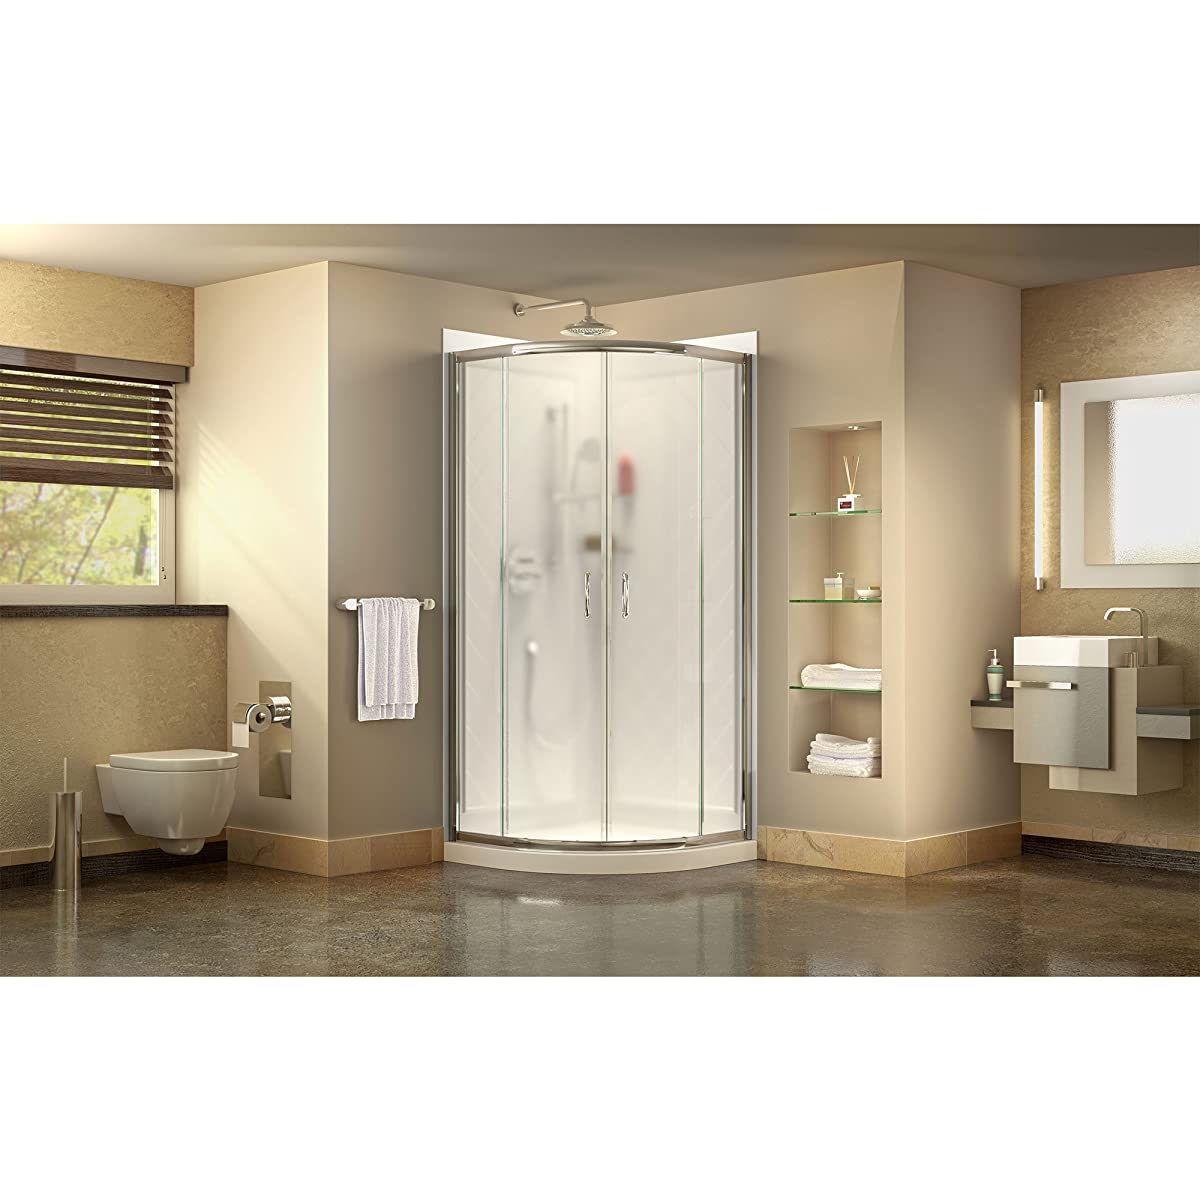 DreamLine Prime 36 in. D x 36 in. W Kit, with Corner Sliding Shower Enclosure in Chrome, White Acrylic Base and Backwalls